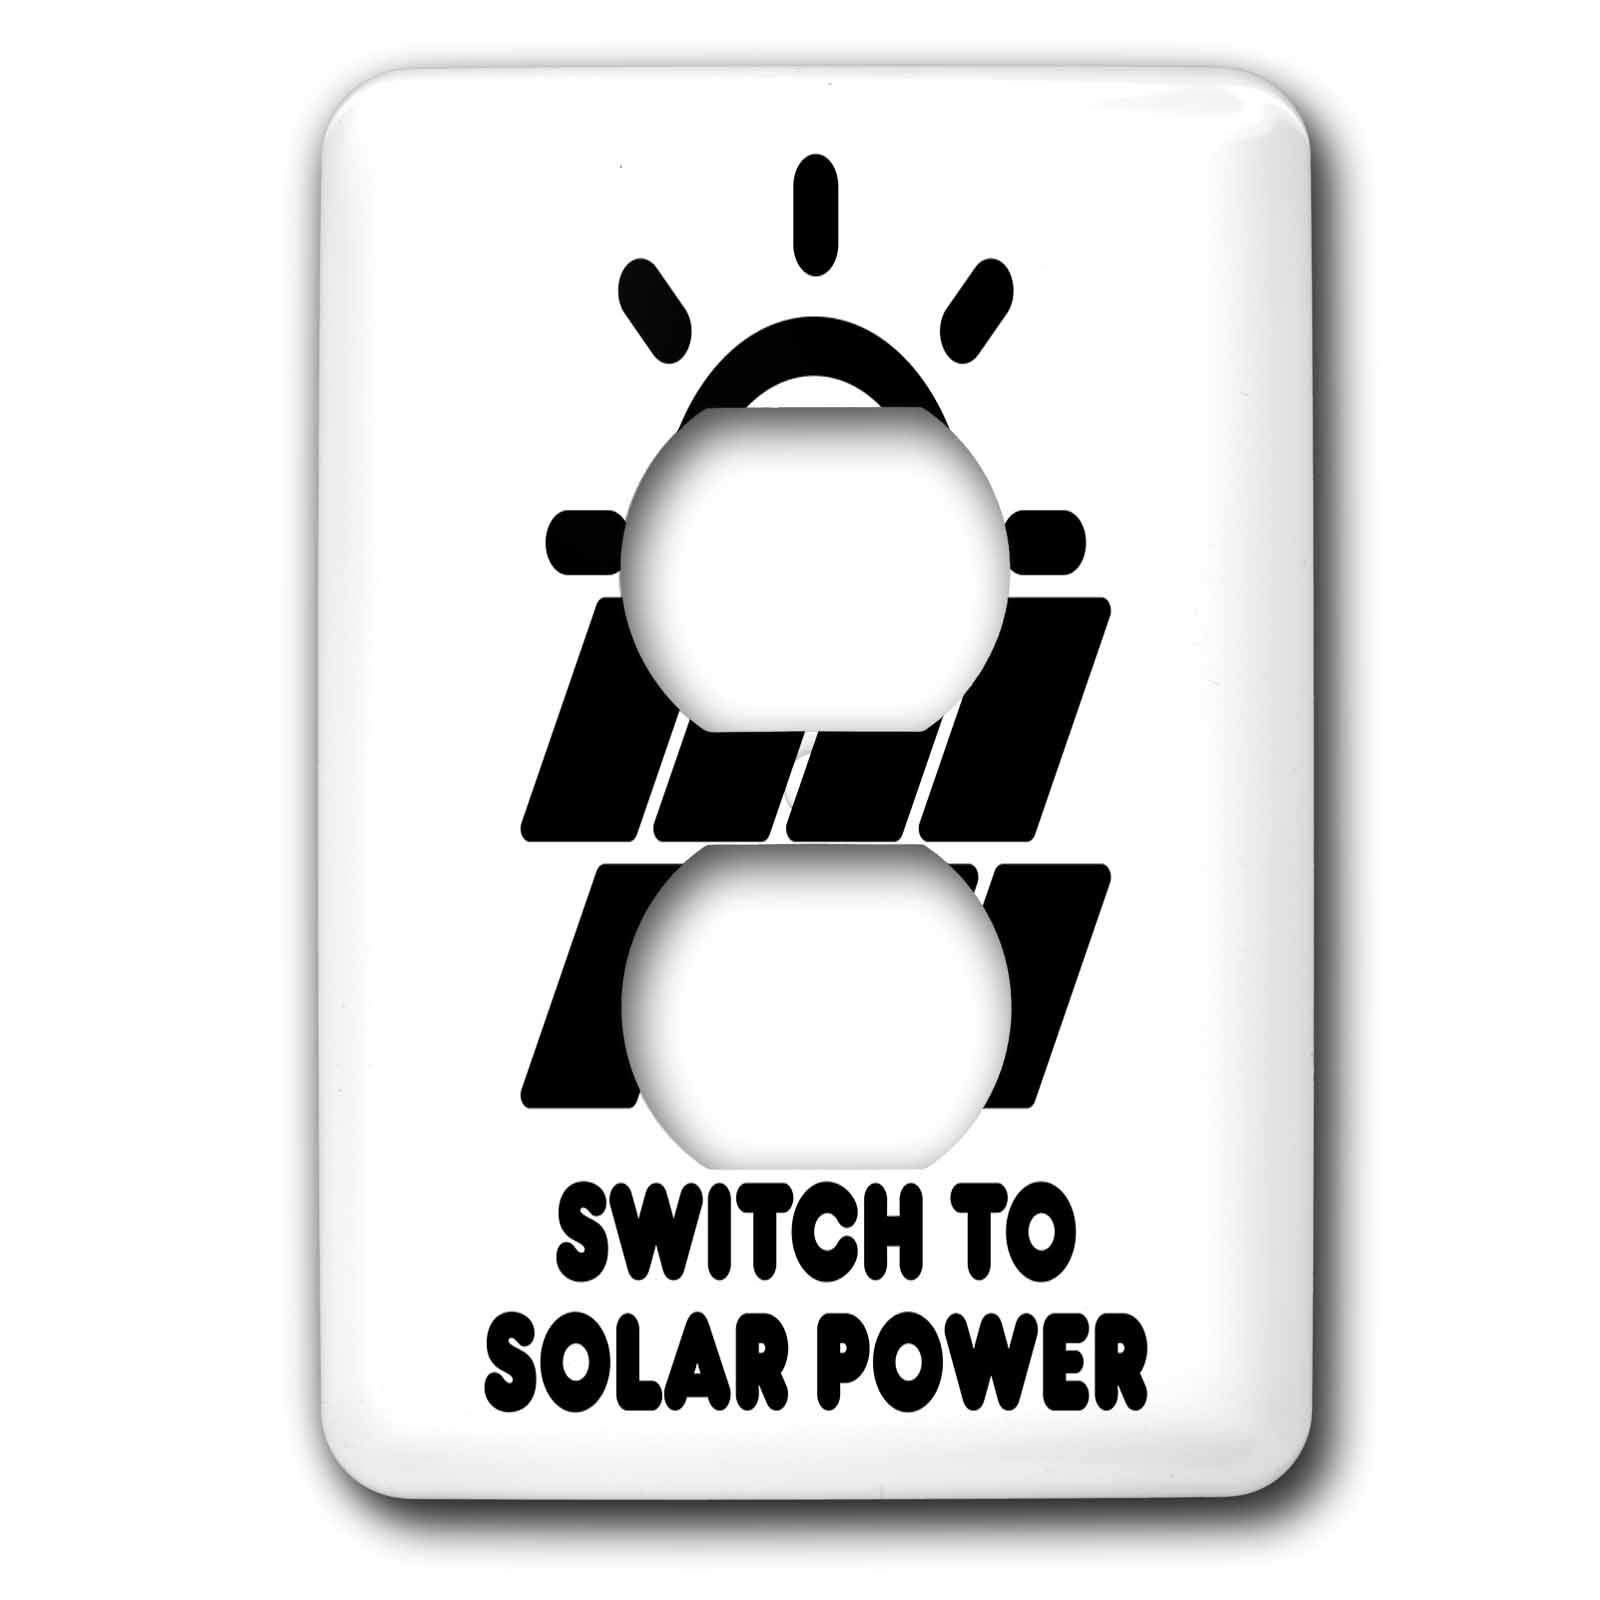 3dRose Carsten Reisinger - Illustrations - Switch to solar power electric power from the sun alternative energy - Light Switch Covers - 2 plug outlet cover (lsp_294721_6)